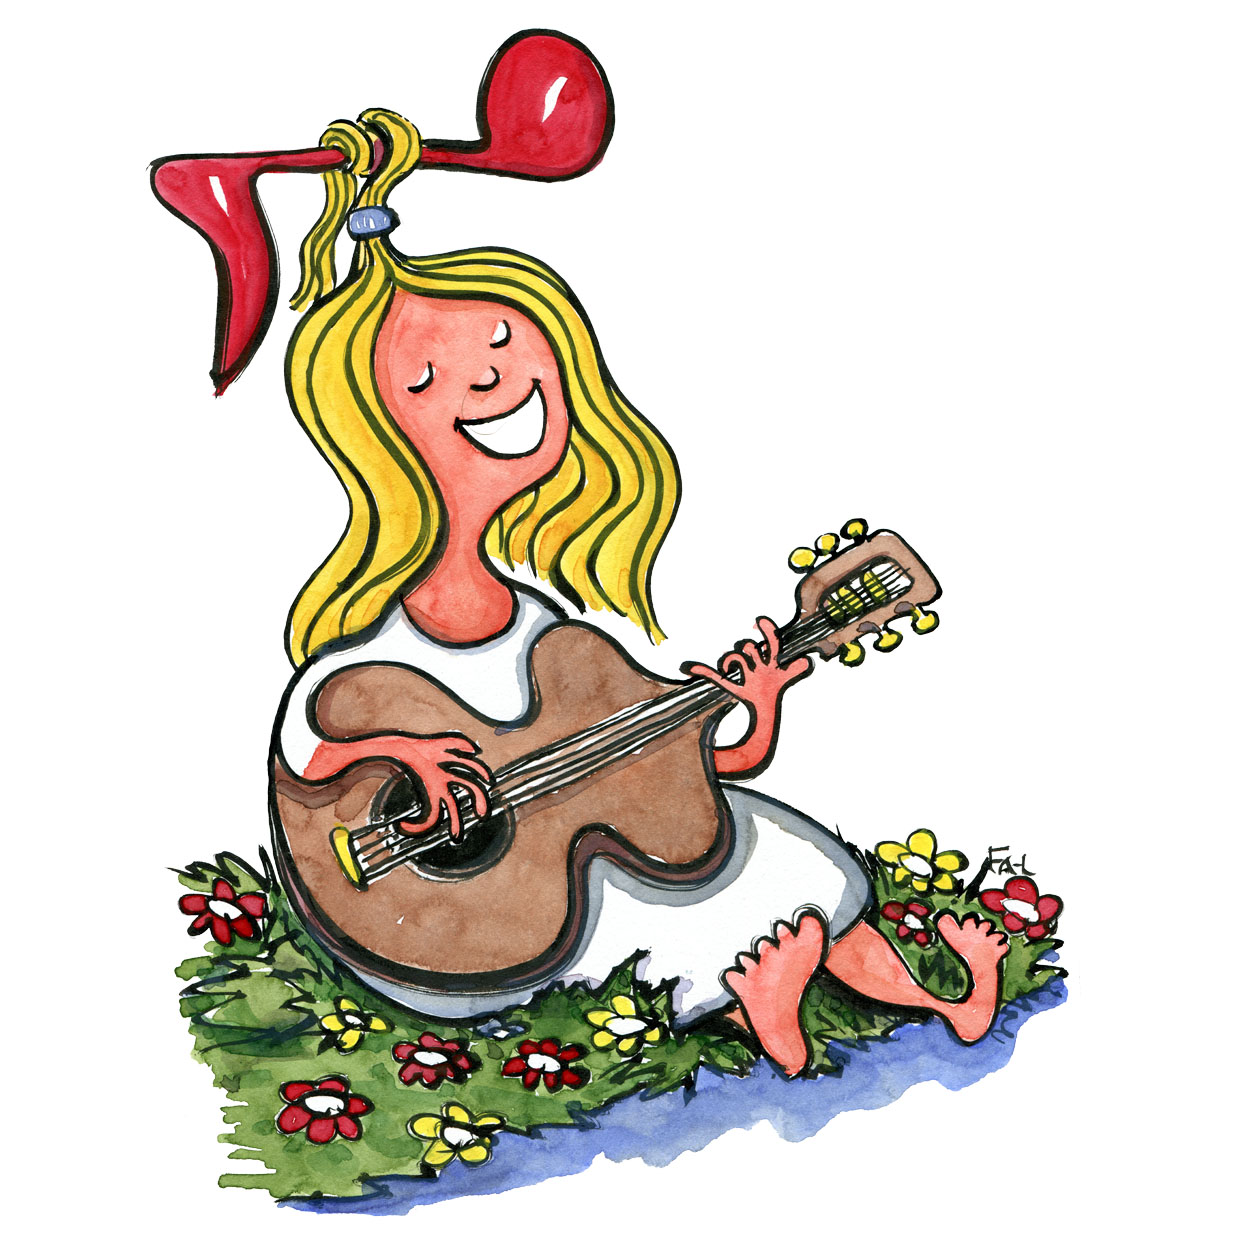 Drawing of a girl sitting by the roadside with a guitar. Singing. Note in her hair. Illustration by Frits Ahlefeldt